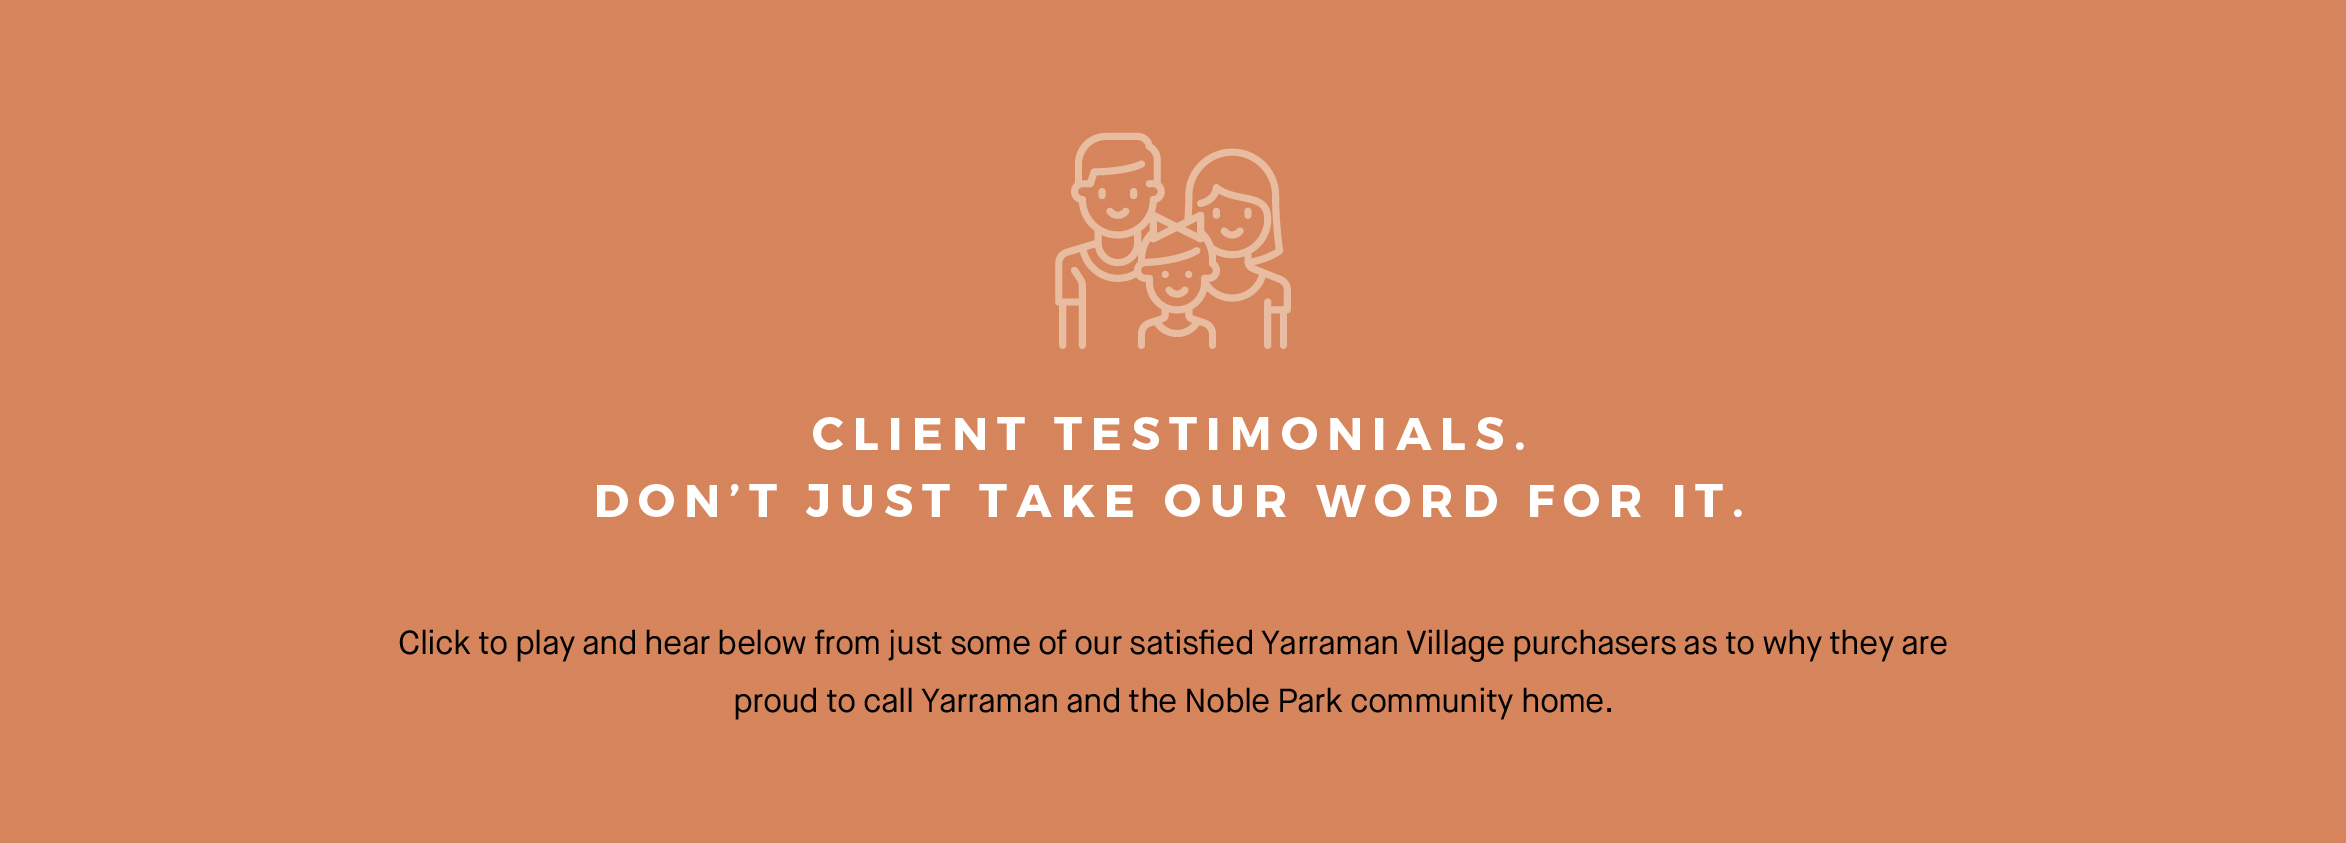 Client testimonials. Don't Just take our word for it. Click to play and hear below from just some of our satisfied Yarraman Village purchasers as to why they are proud to call yarraman and the Noble Park community home.